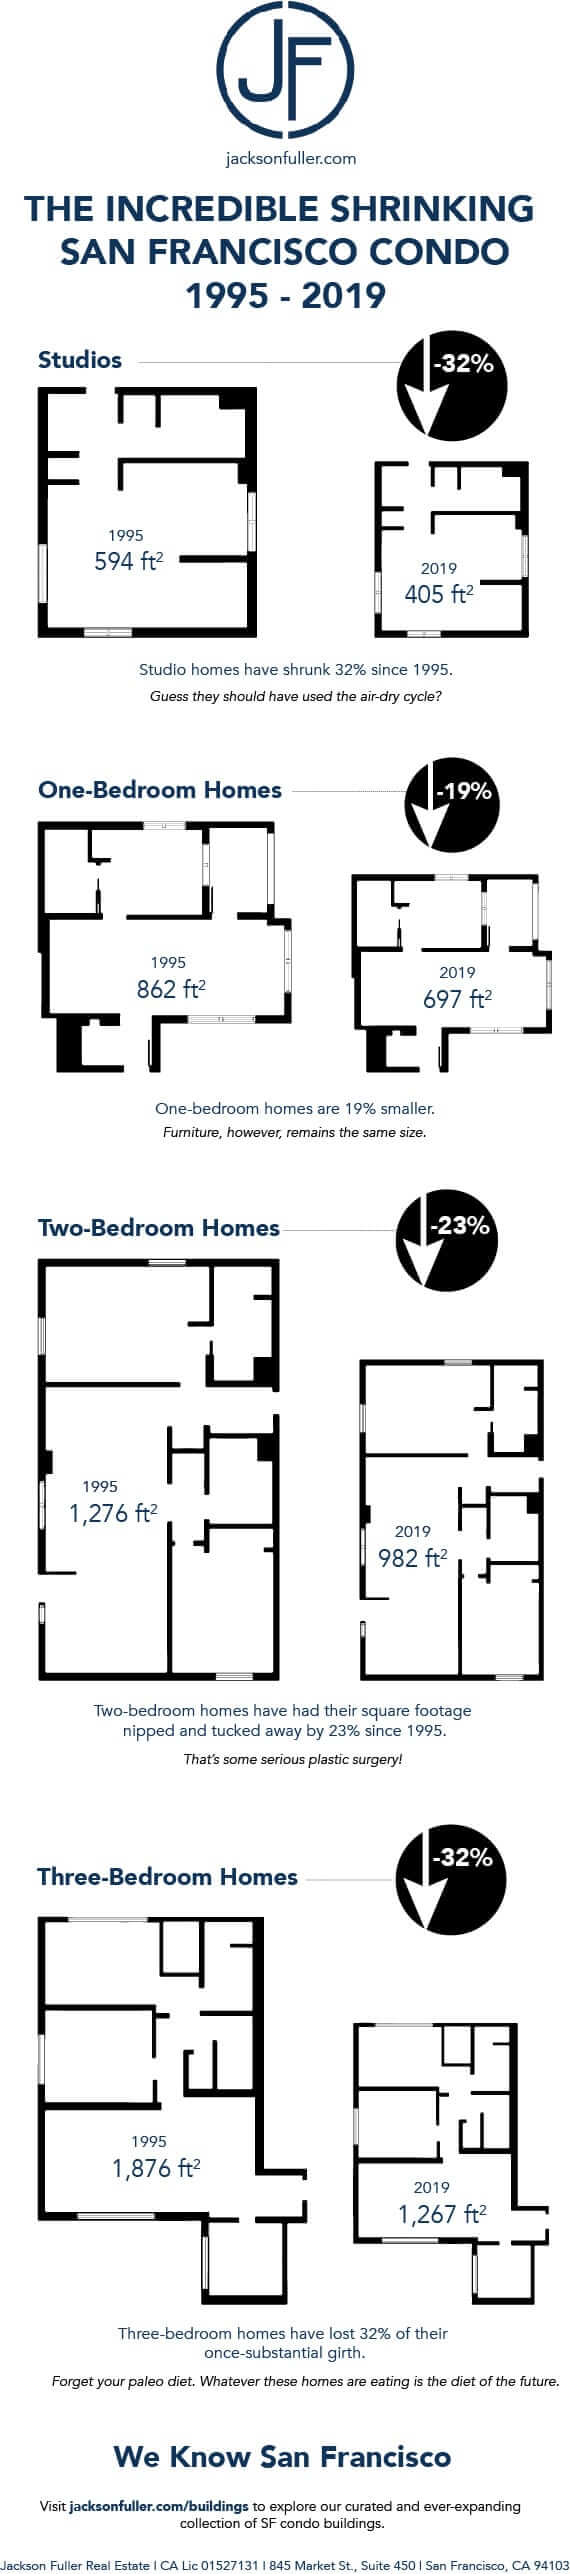 Home sizes in San Francisco have shrunk since 1995. This infographic shows how much